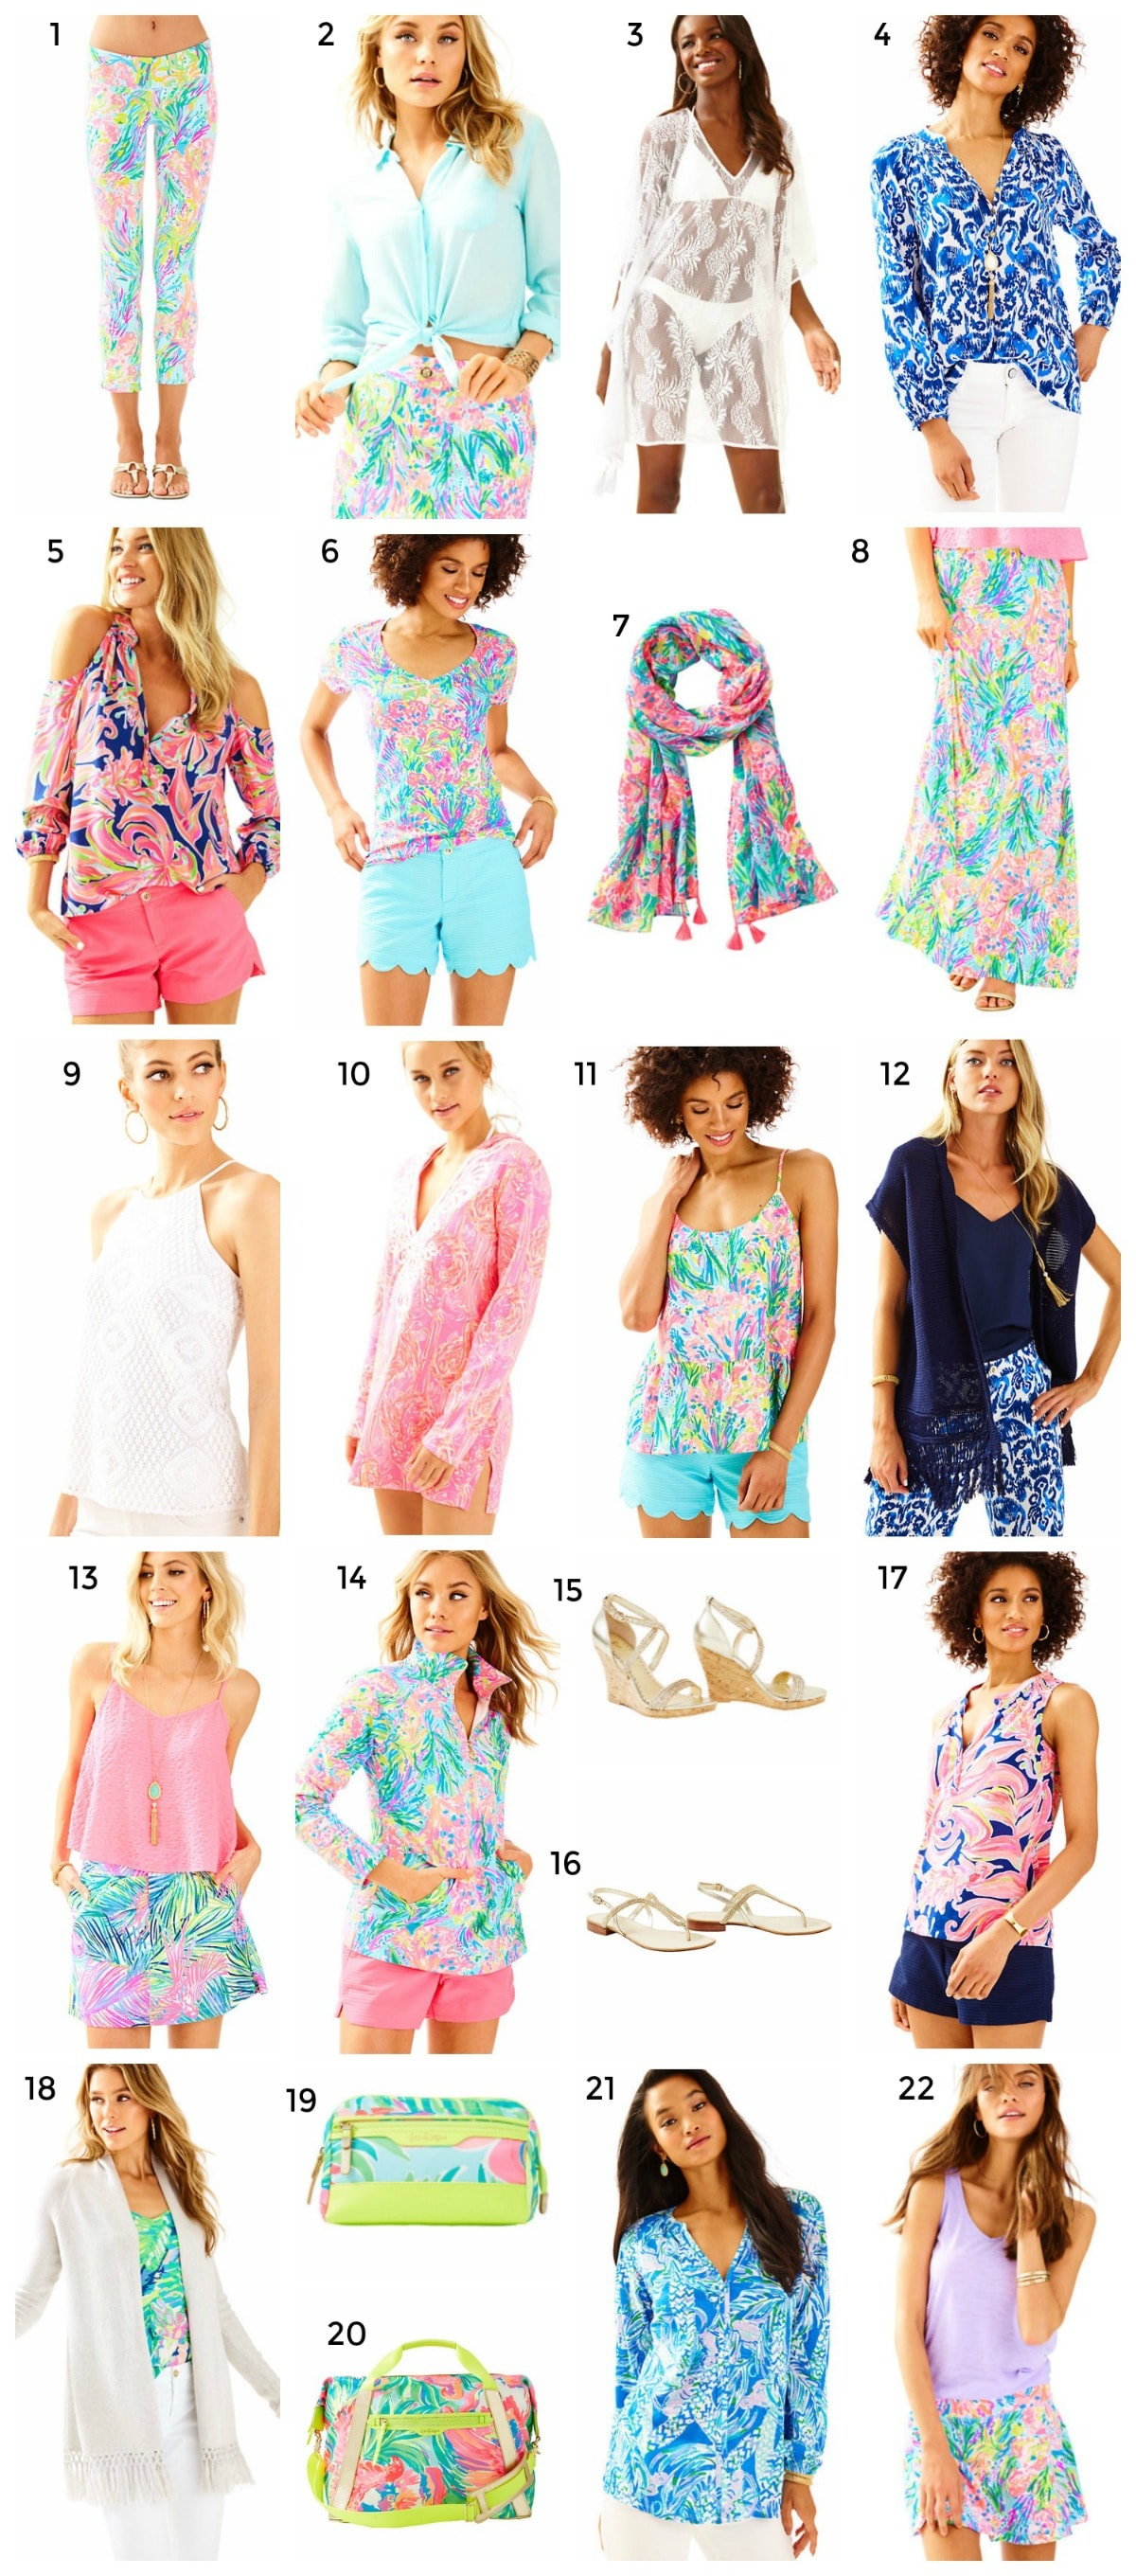 8a1a413d52f Lilly Pulitzer Spring Collection + New Arrivals + Cutest Lilly Pulitzer  Shirts | Florida Style Blogger